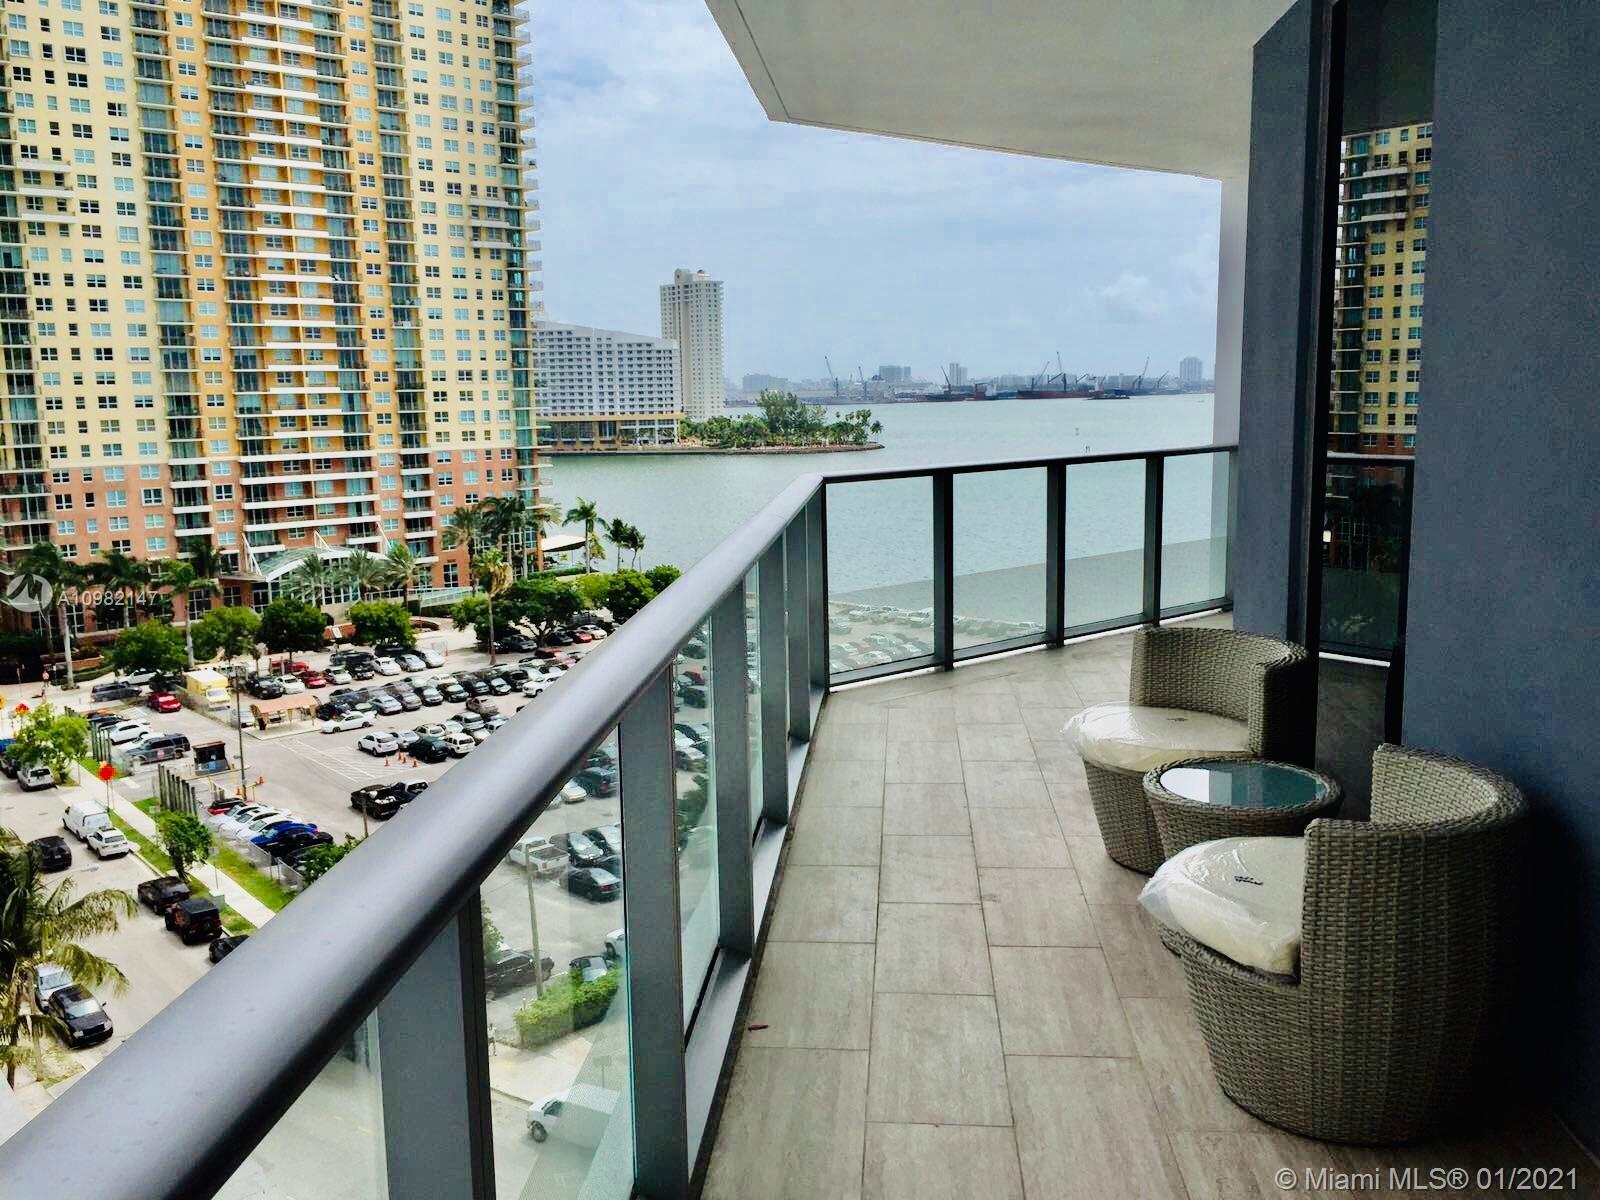 Gorgeous one bedroom apartment, equipped with top of the line appliances, beautiful kitchen and a very convenient 1/2 bathroom. This unit has great unobstructured view to Miami bay and a wonderful balcony in the room and also in the living area. Brickell House Apartments is known for being one of the top and newest buildings in the area. There are several amenities such as heated pool, SPA, gym, kids' room and 24hr security. Brickell House has robotic parking system but is closed until further notice, there is 24/7 valet parking.